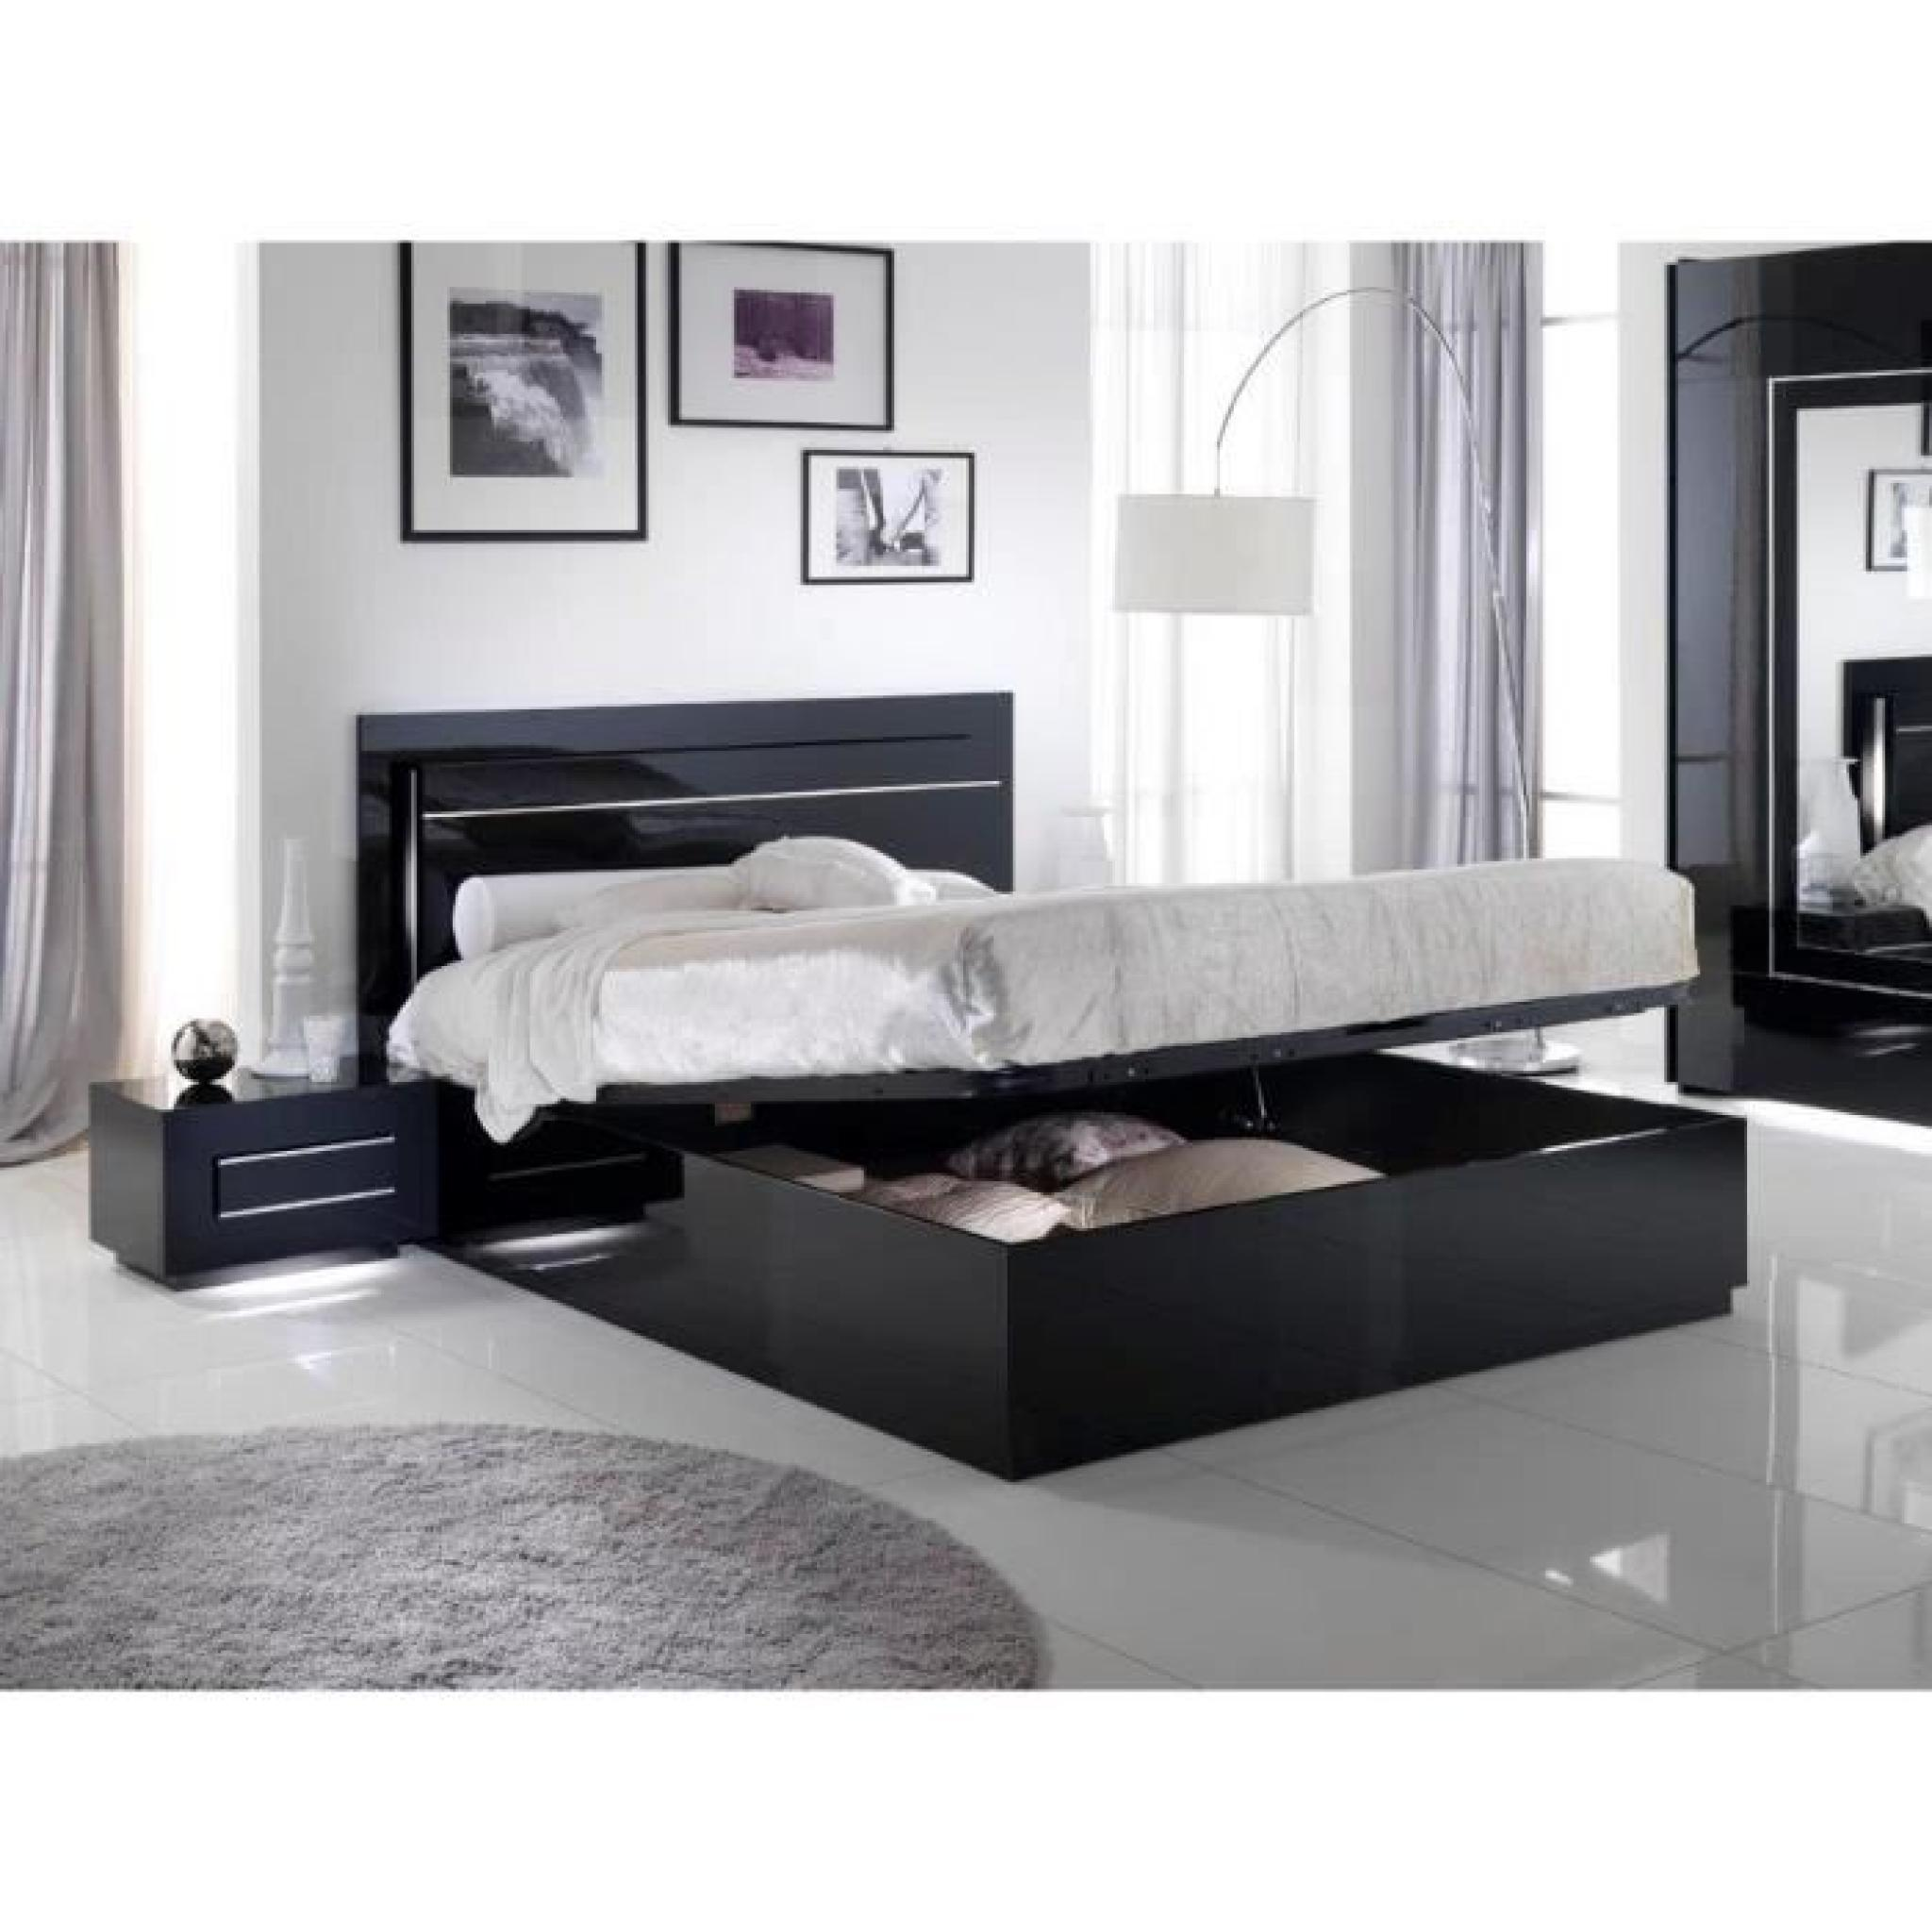 Beautiful model lit de chambre contemporary home ideas for Model petite chambre a coucher